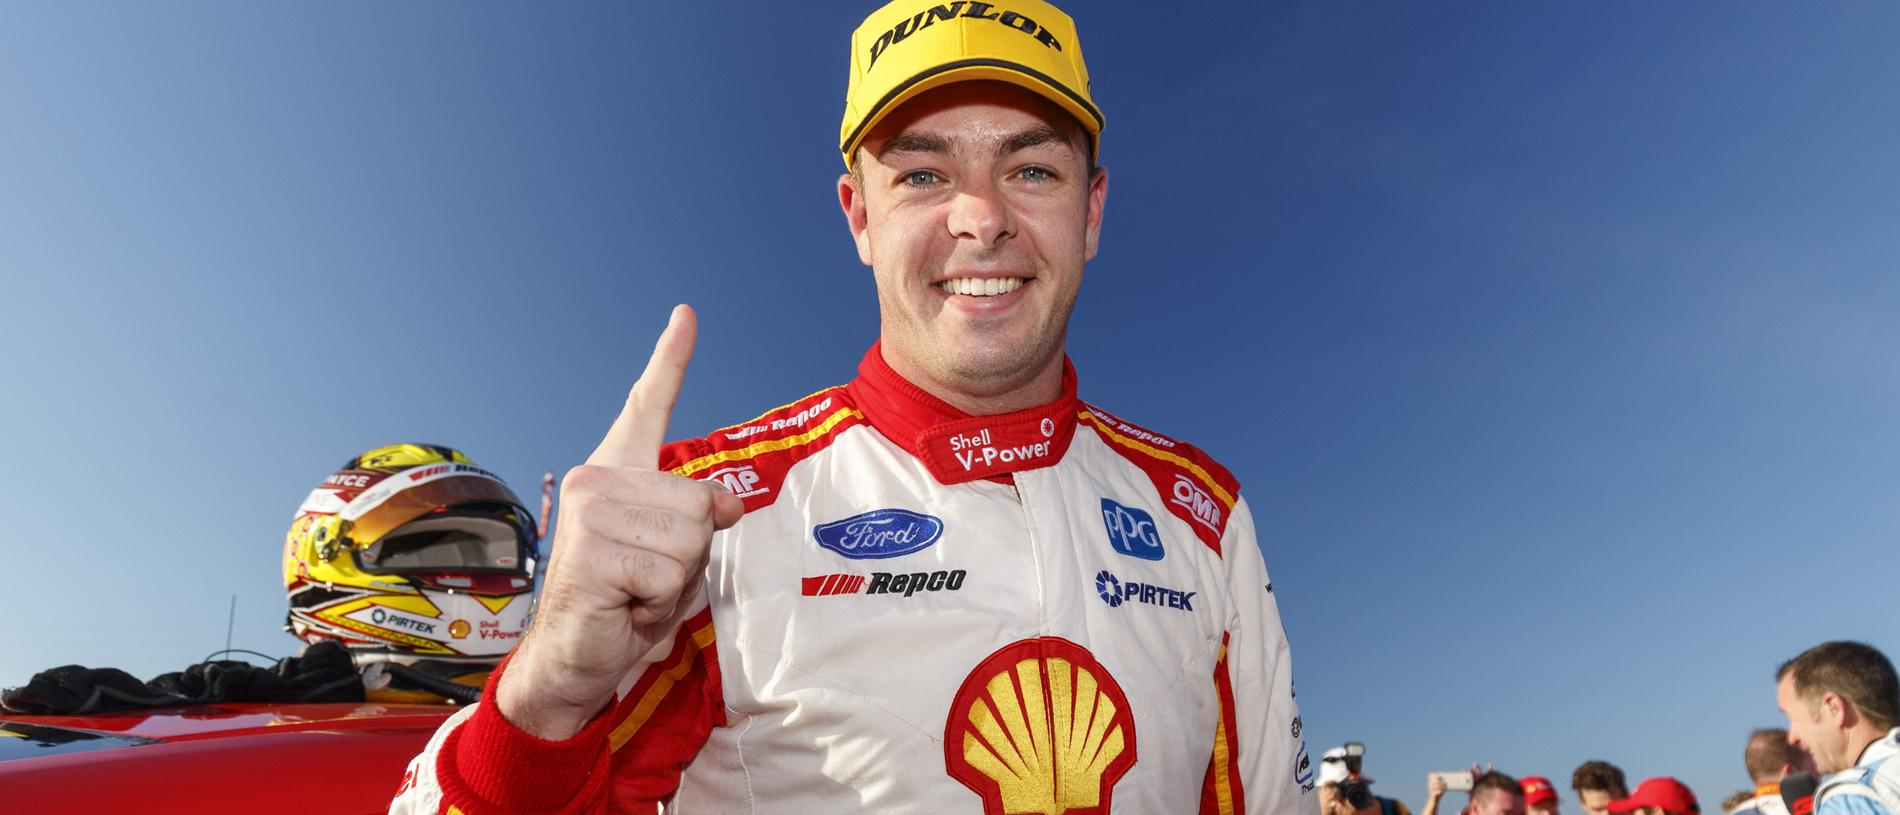 A supplied image of Supercars driver Scott McLaughlin winning the opening race of the BetEasy Darwin Triple Crown SuperSprint Event 7 of the Virgin Australia Supercars Championship in Darwin, Saturday, June 15, 2019. (AAP Image/Mark Horsburgh) NO ARCHIVING, EDITORIAL USE ONLY